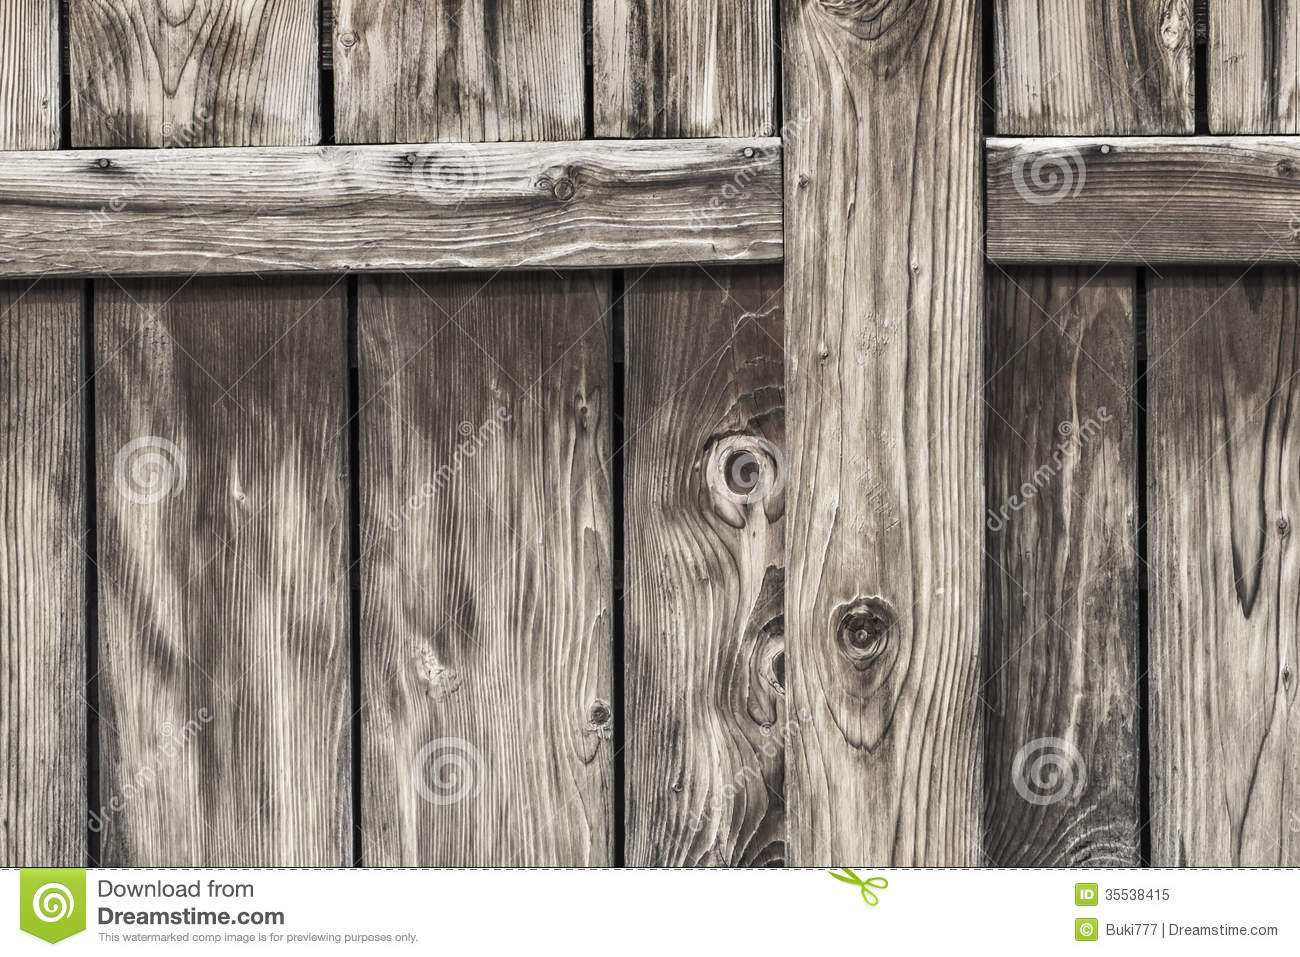 Antique rustic pine wood barn door detail stock image